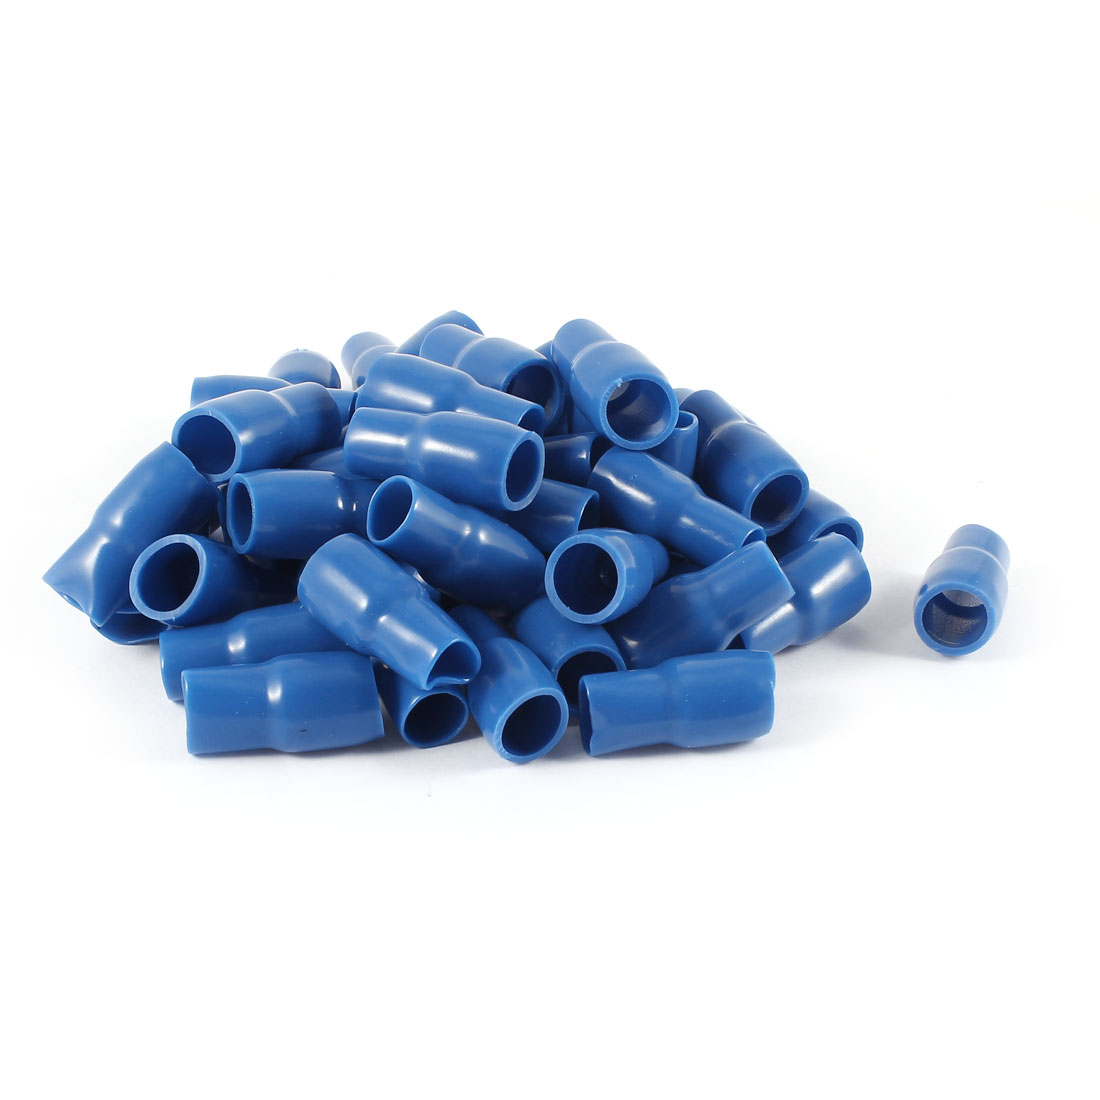 50 Pcs Blue Soft PVC Wire V-22 25mm2 Crimp Terminal End Insulated Sleeves Caps Cover